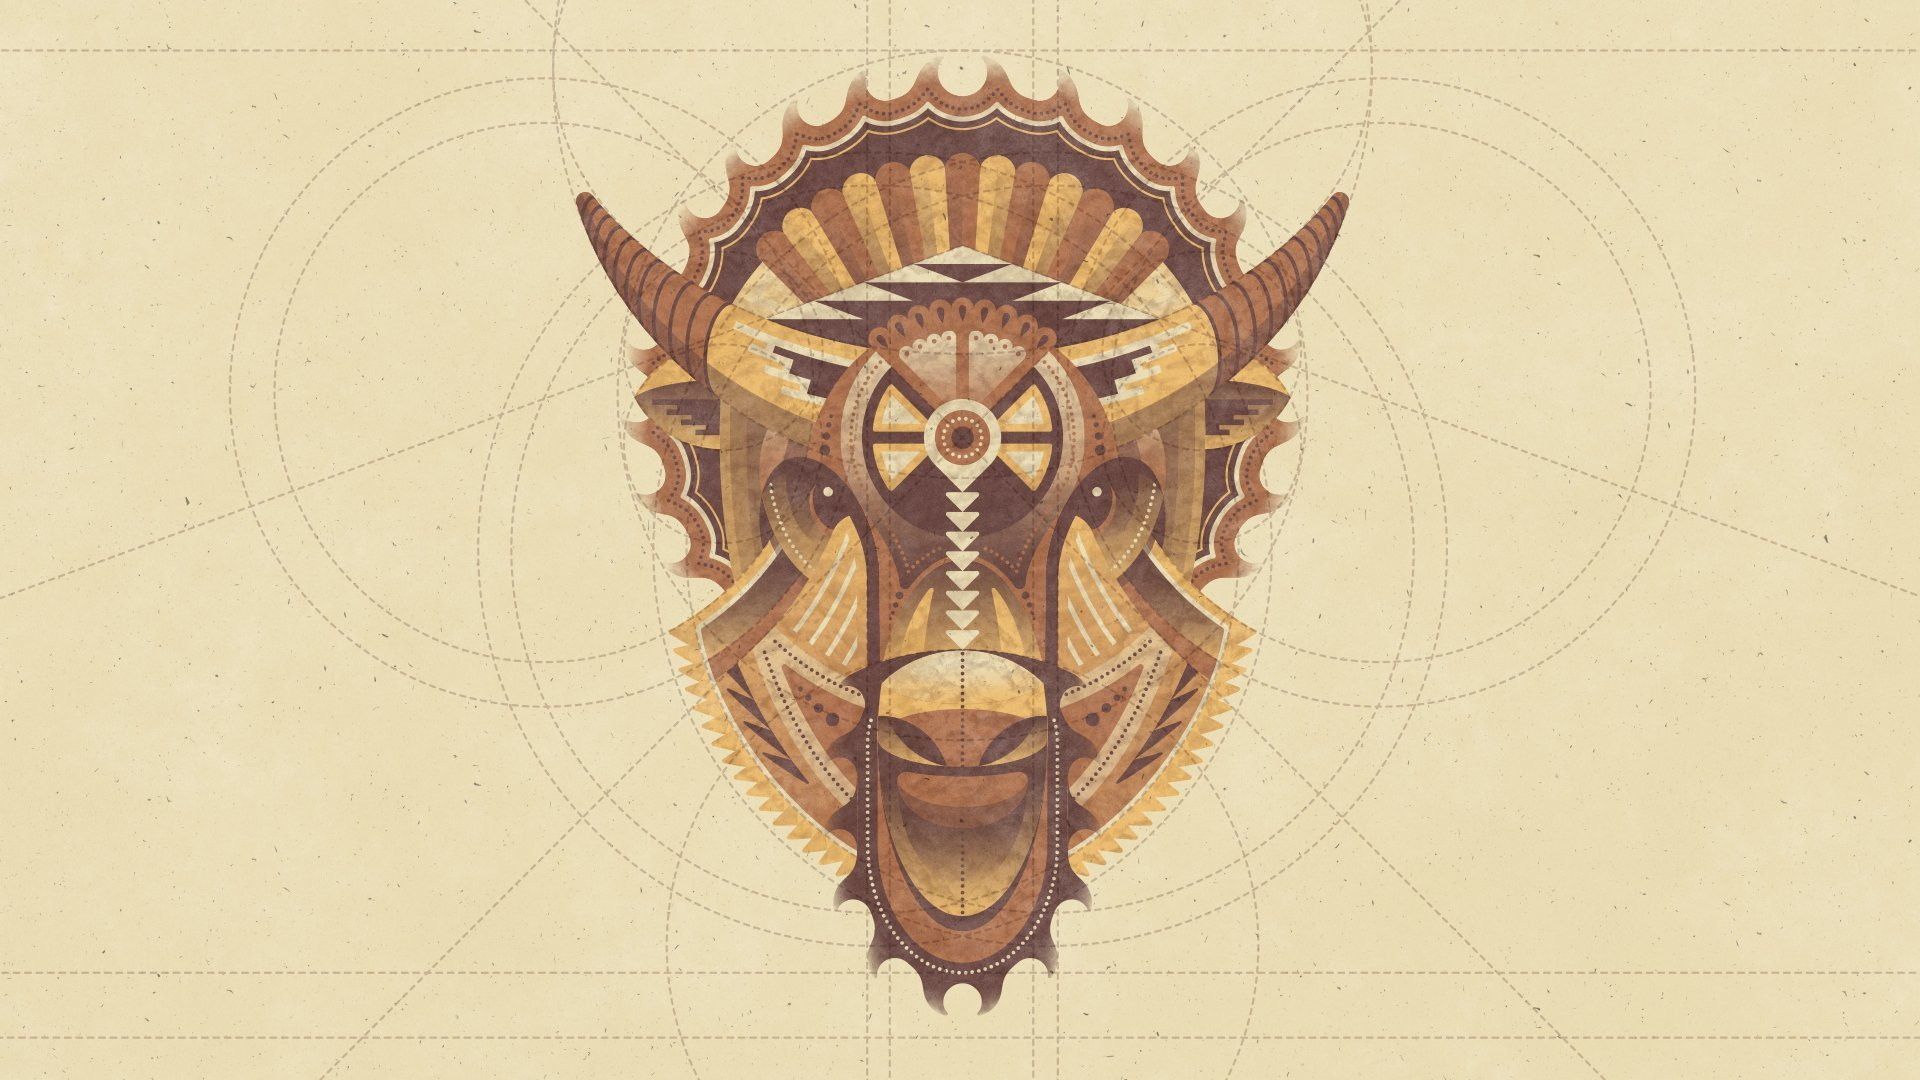 Illustration for Designers: Create Your Own Geometric Animal